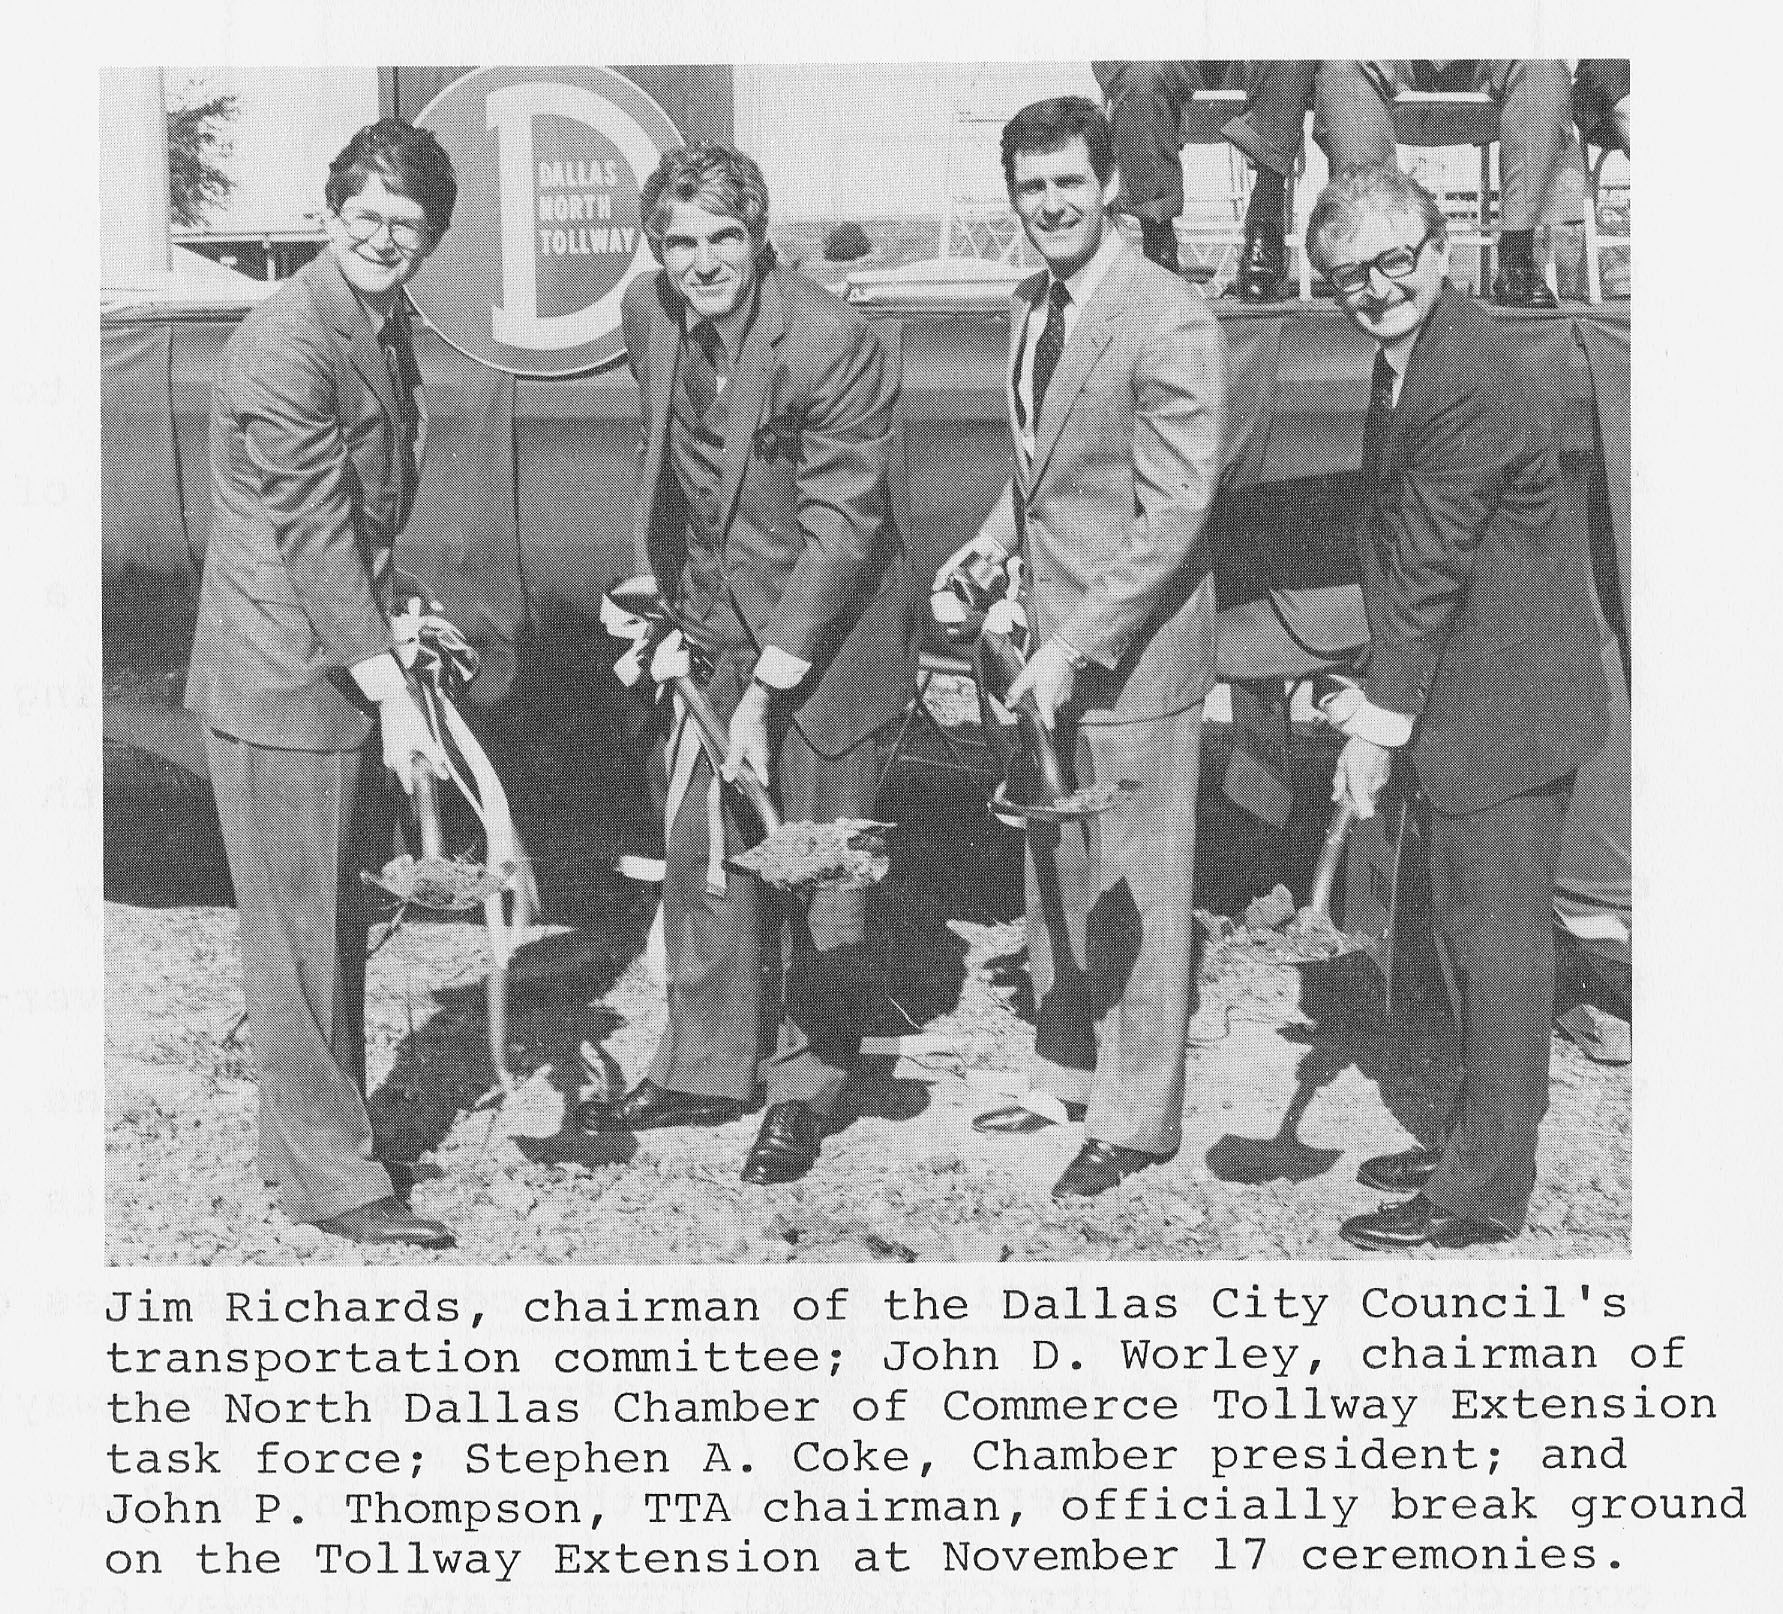 On November 17 1983 Ntta Board Members Officially Break Ground On The Dallas North Tollway Extension Dallas City City Council Presidents